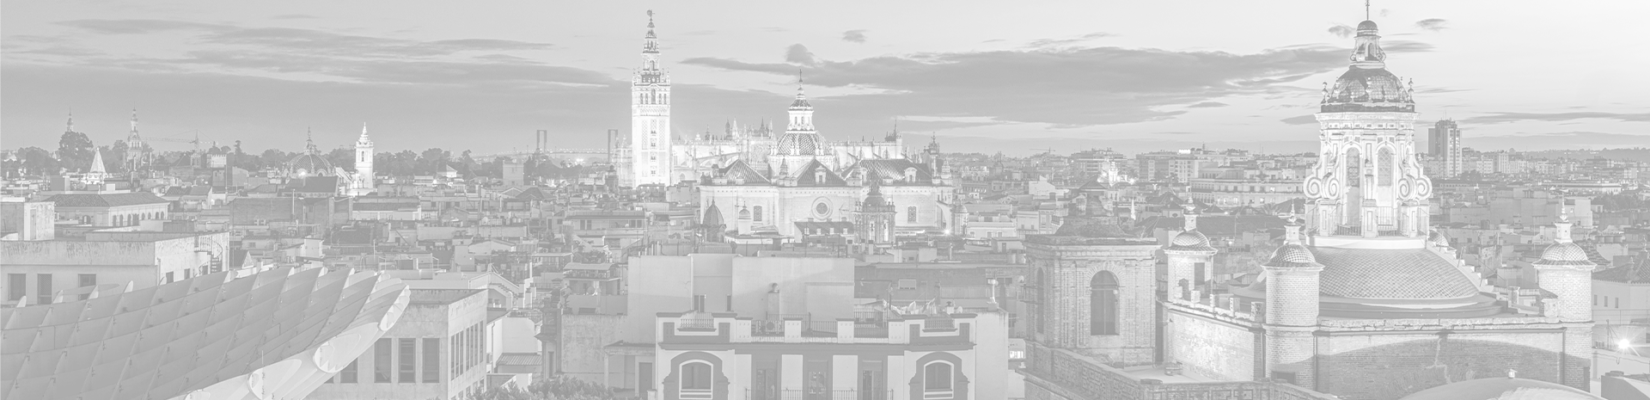 Transparent-Gray Background of City in Spain - BluJay Customs Management